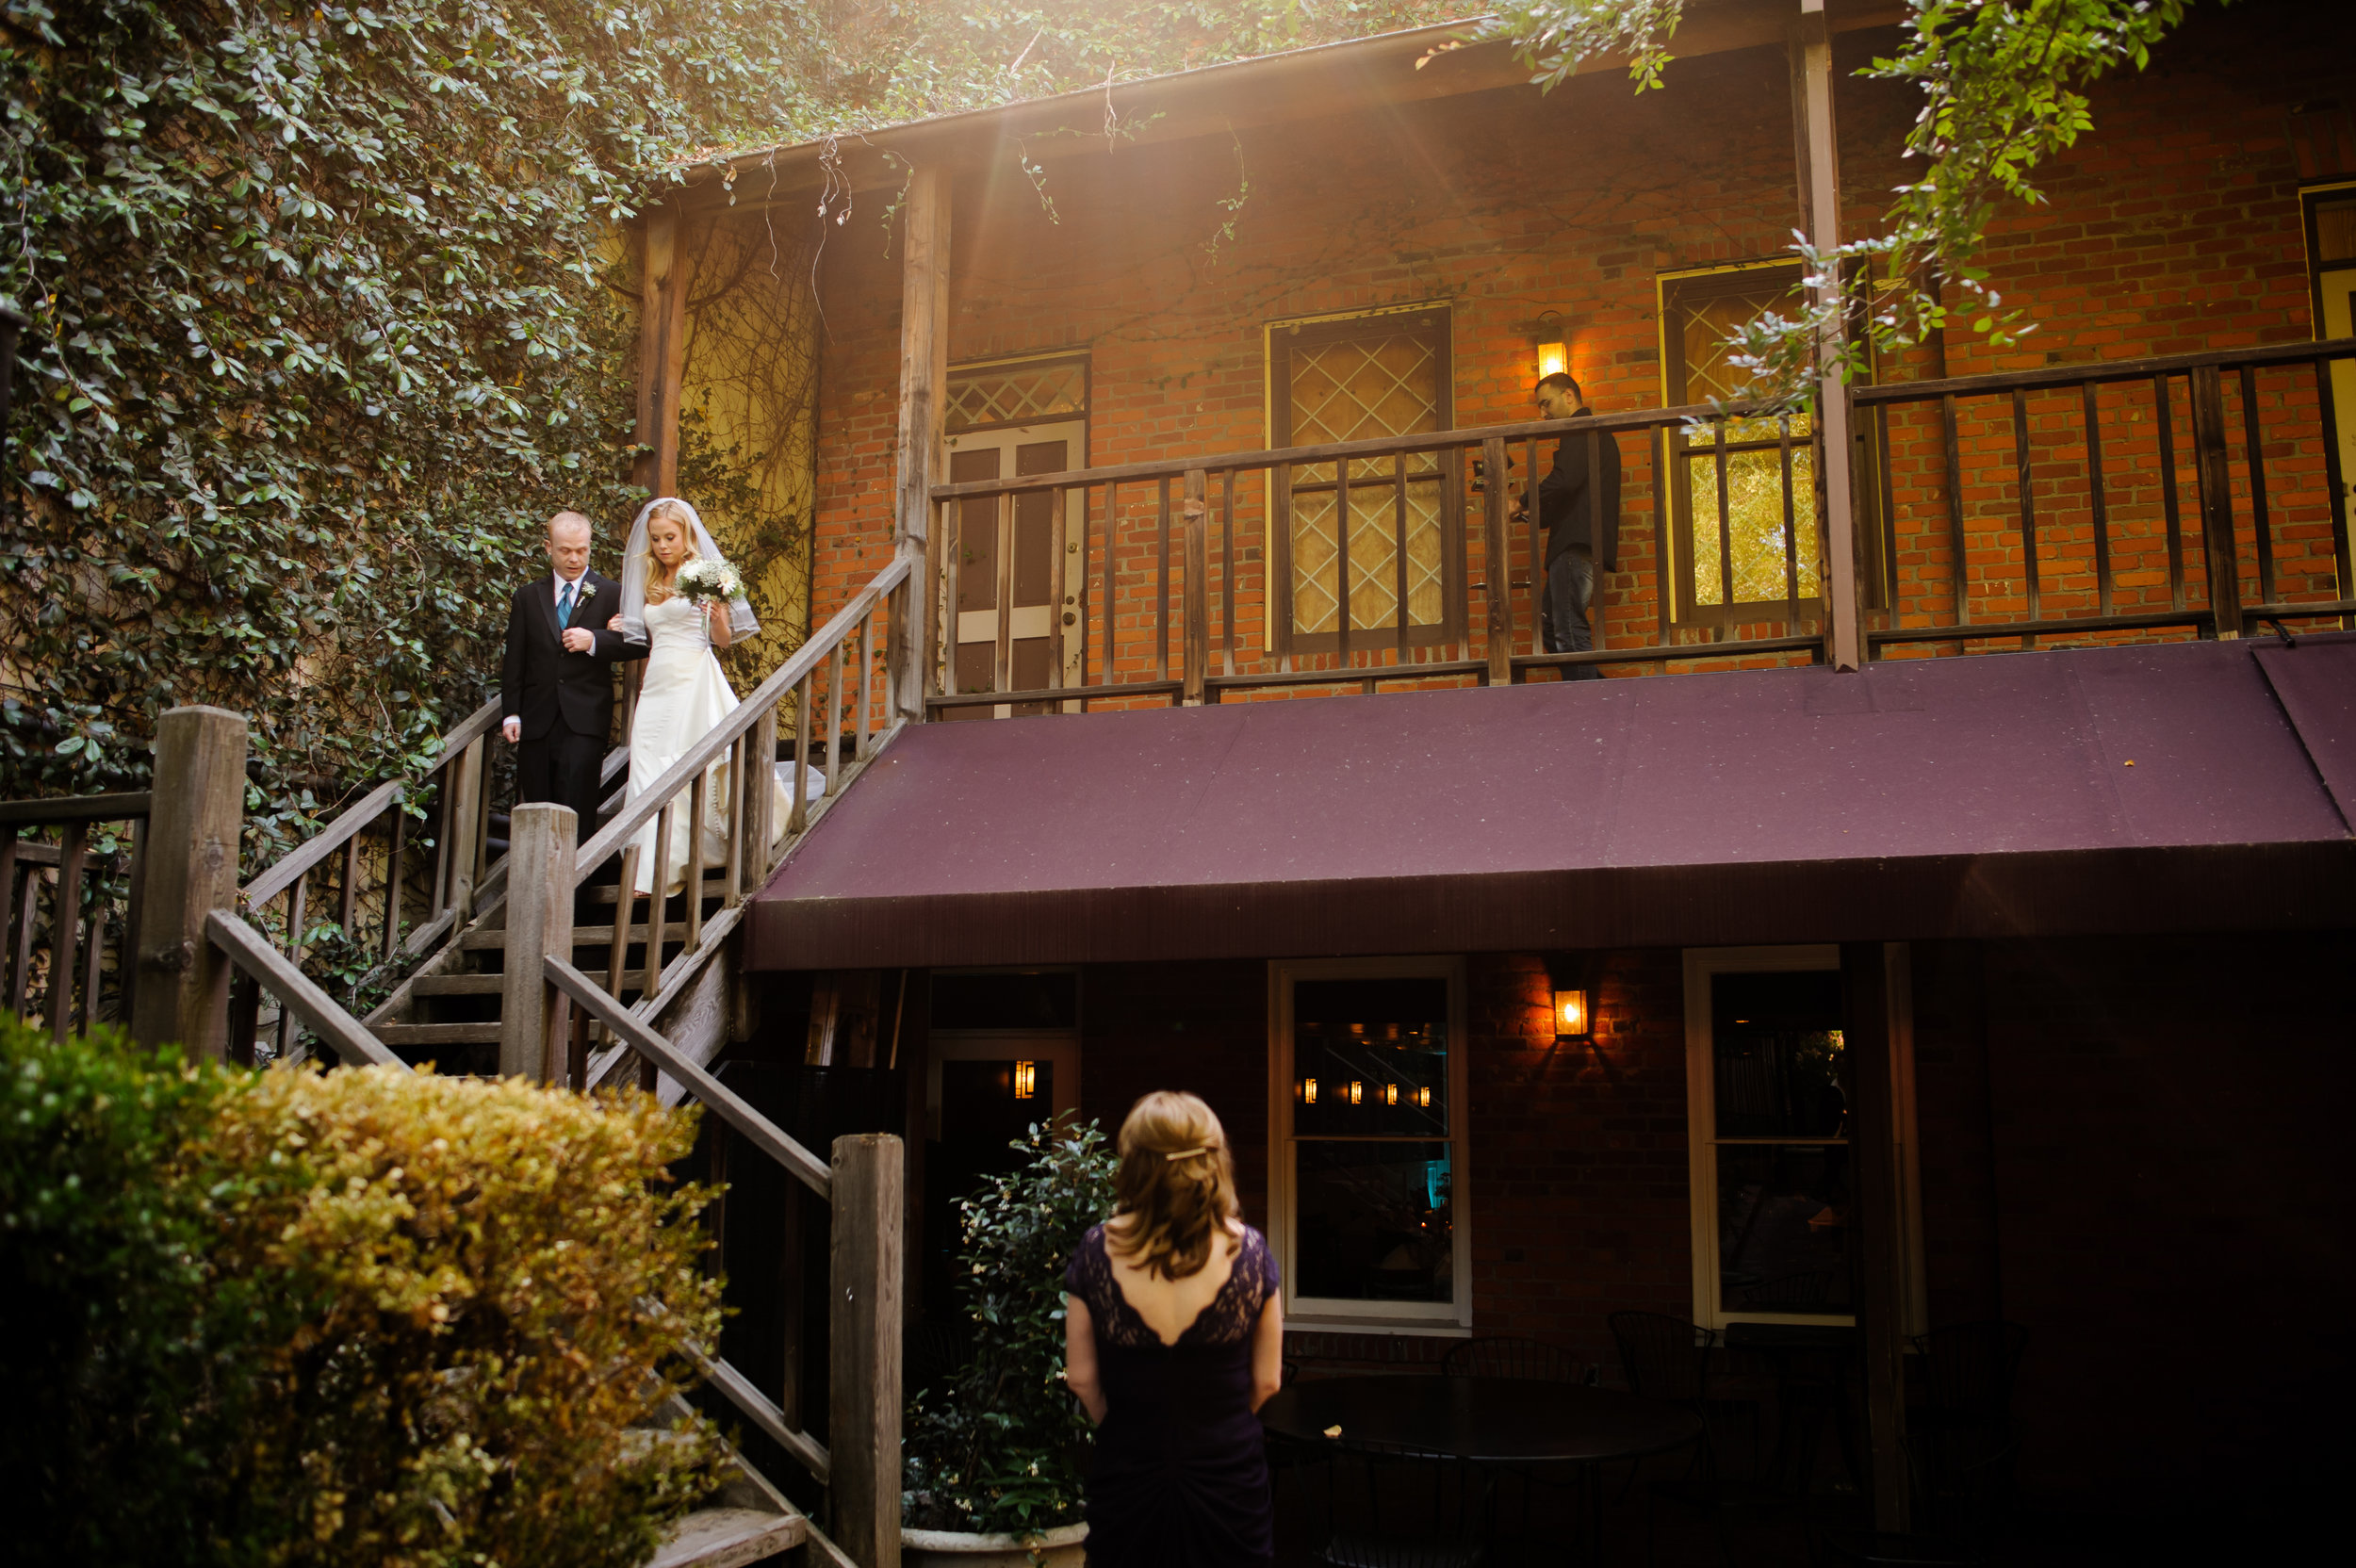 jenelle-brian-001-courtyard-d'oro-old-sacramento-wedding-photographer-katherine-nicole-photography019.JPG